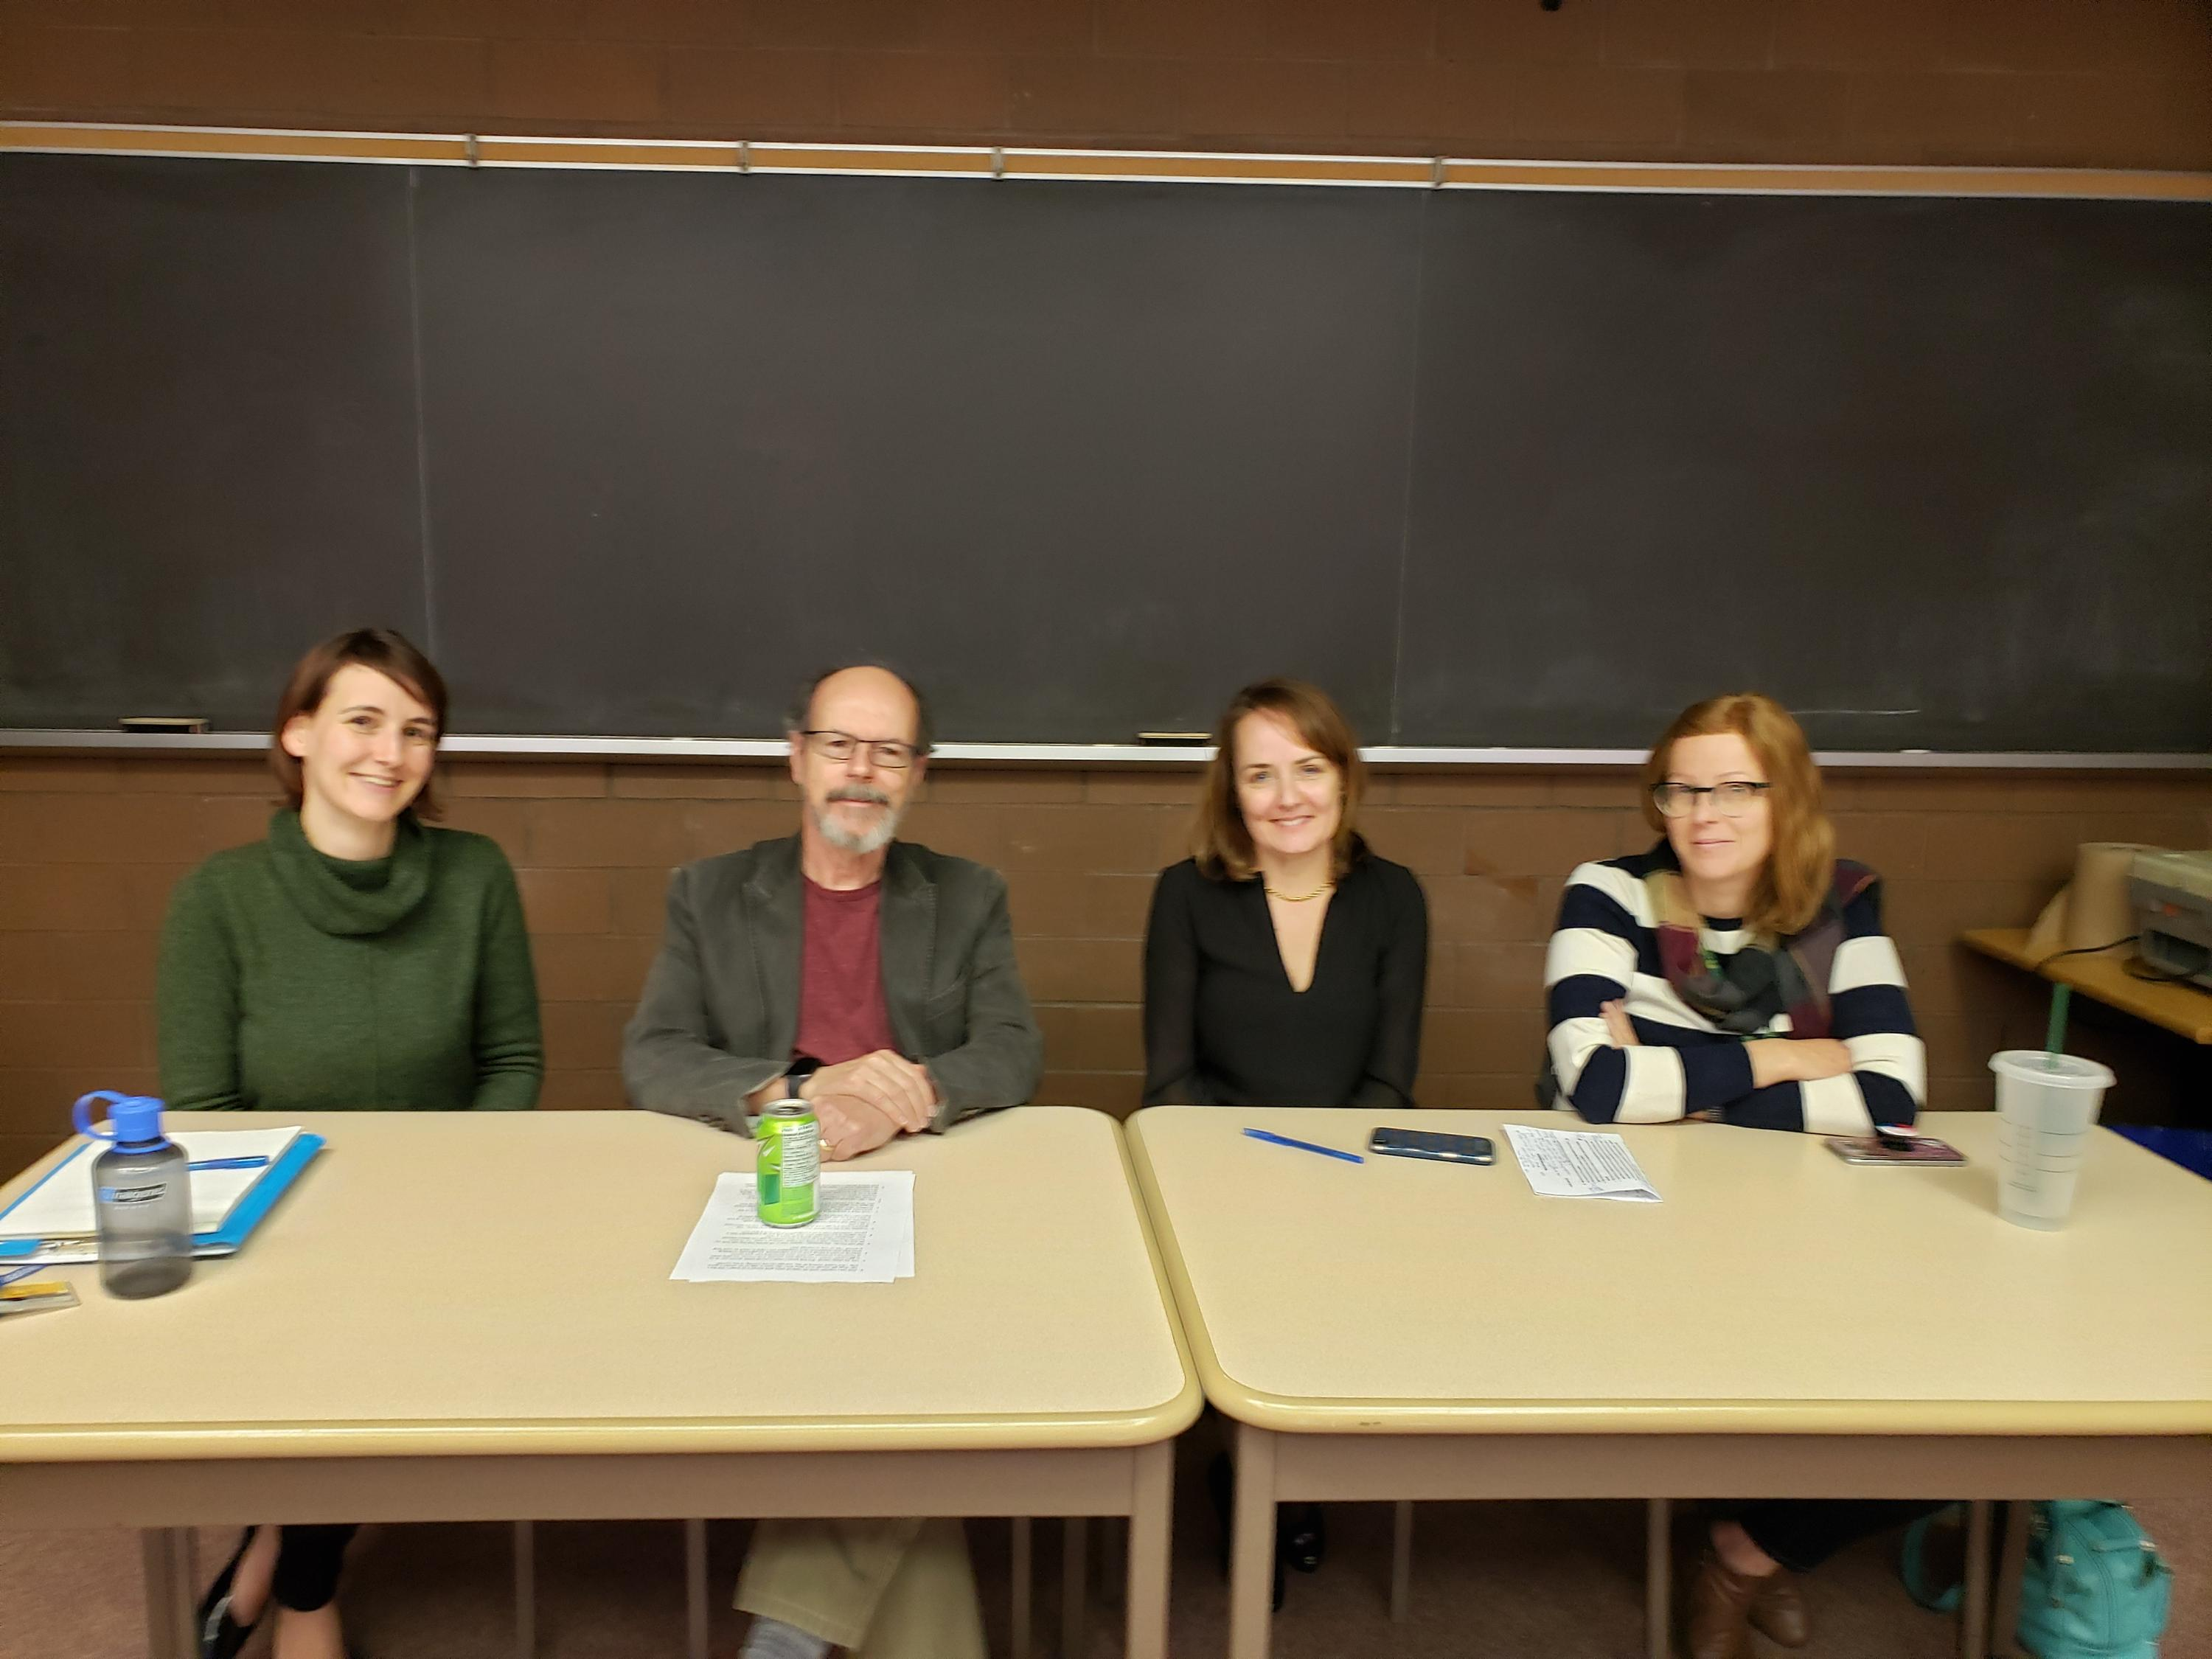 Image of Drs. Seeds, McLeod, Henderson, and Mewhort-Buist